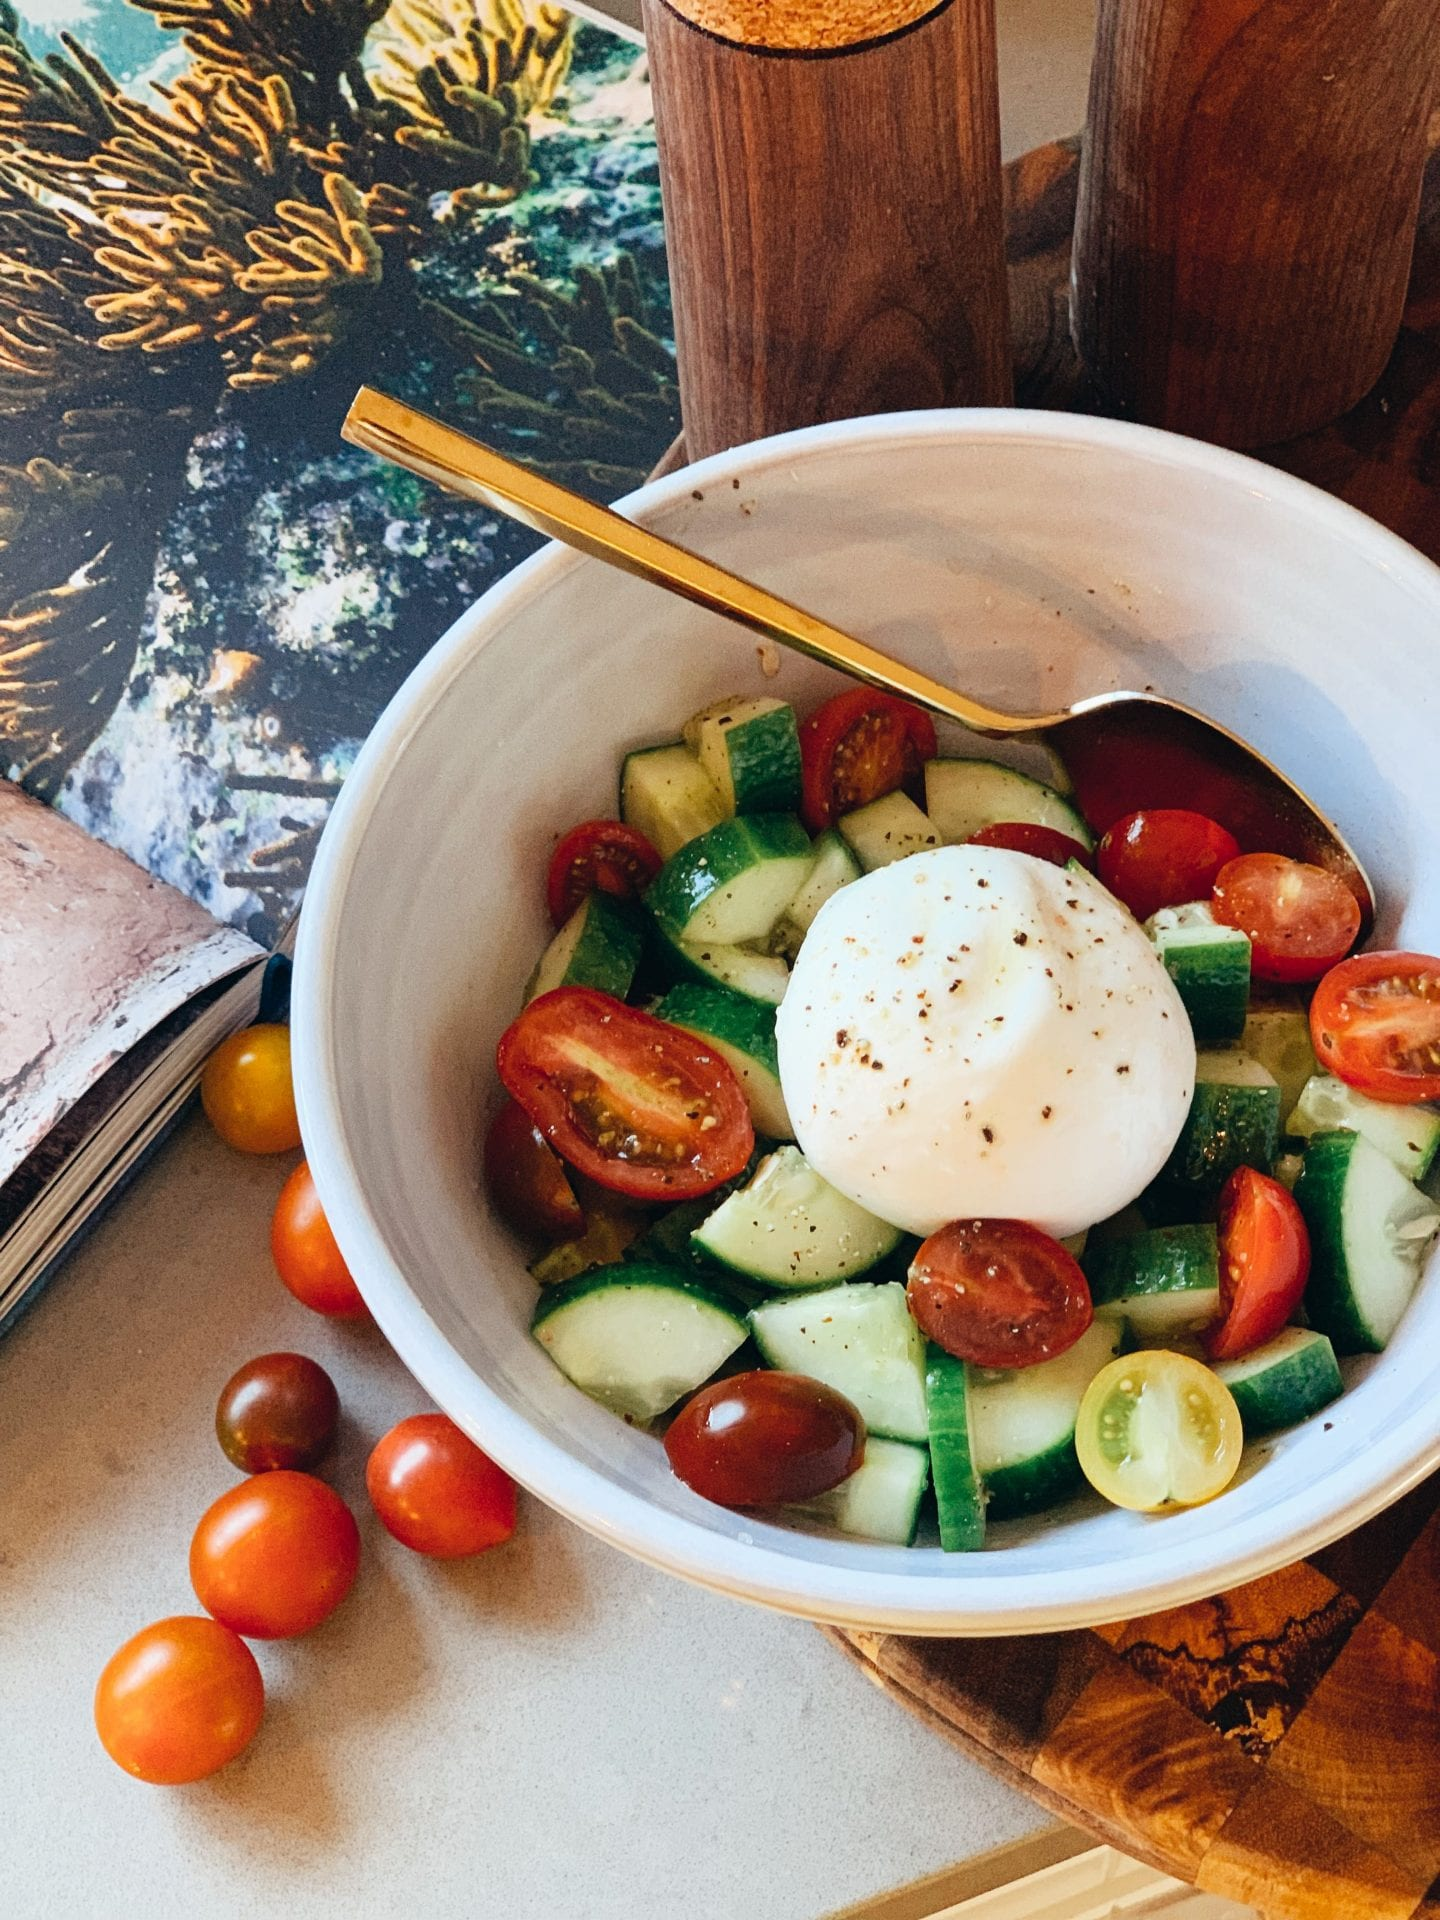 Fresh Cucumber Tomato Burrata Salad Recipe--Keto Friendly! by popular life and style blog, Just Add Glam: image of some burrata salad in a white ceramic bowl with a gold spoon.